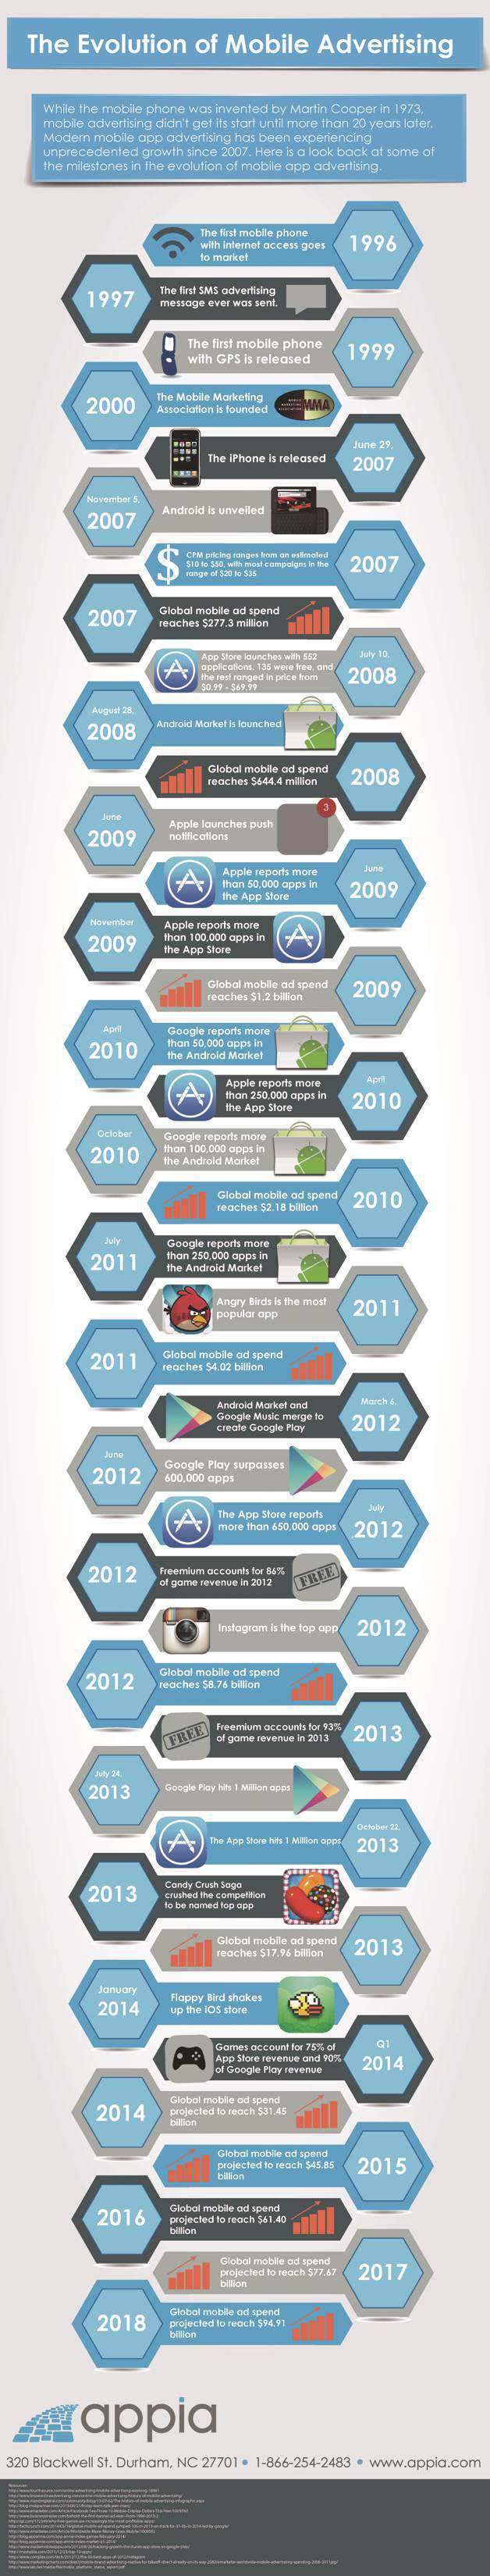 Evolution of Mobile Advertising